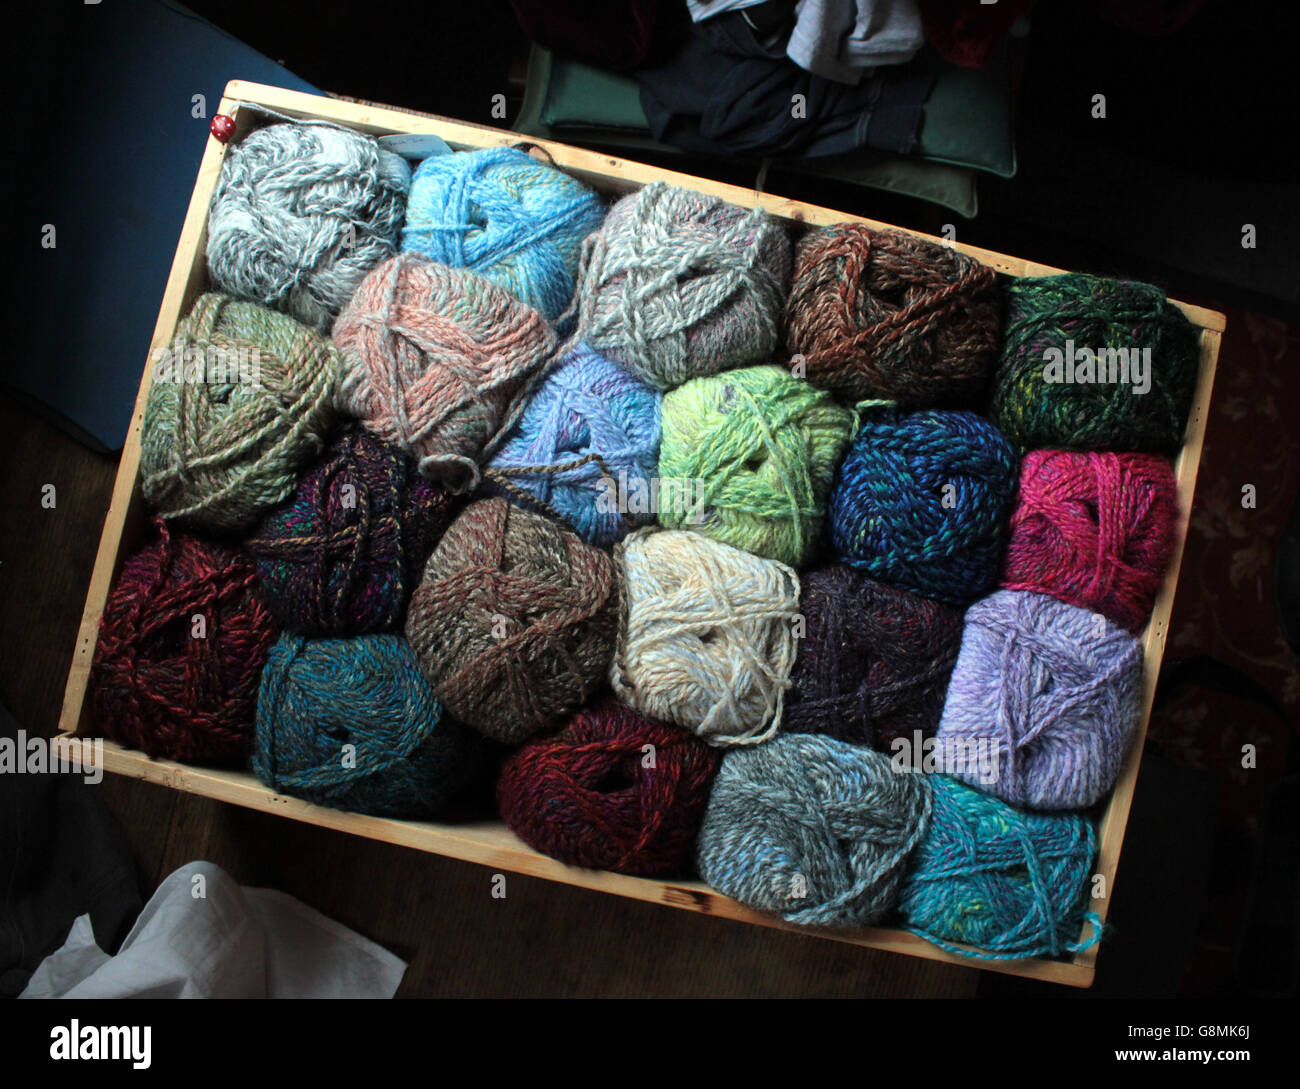 A display box of hand knitting yarns in various shades from blues, browns through to reds and greens. - Stock Image